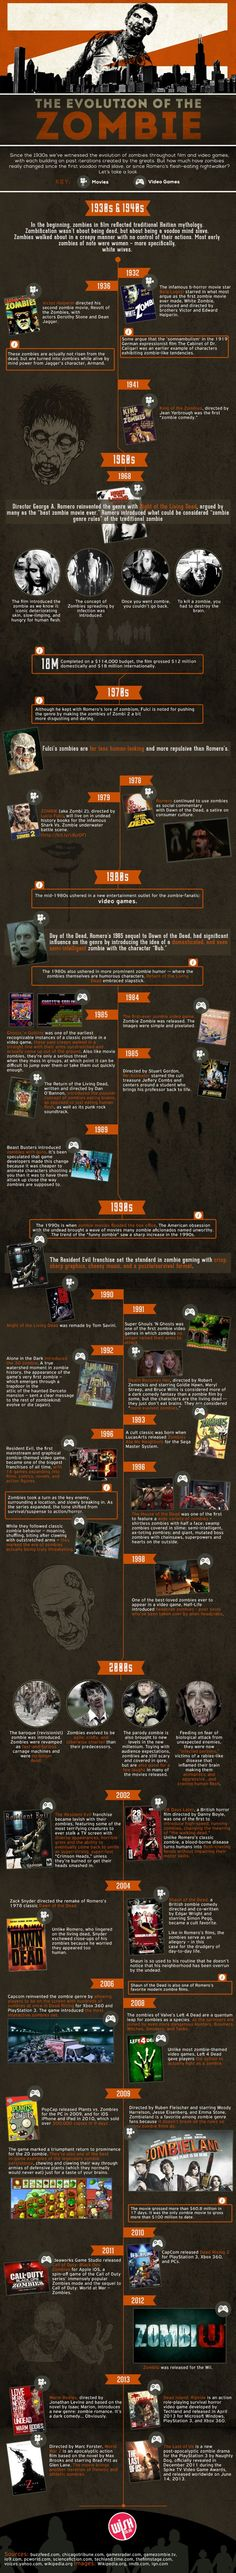 The Evolution Of The Zombie  #Infographic #Zombie #Entertainment